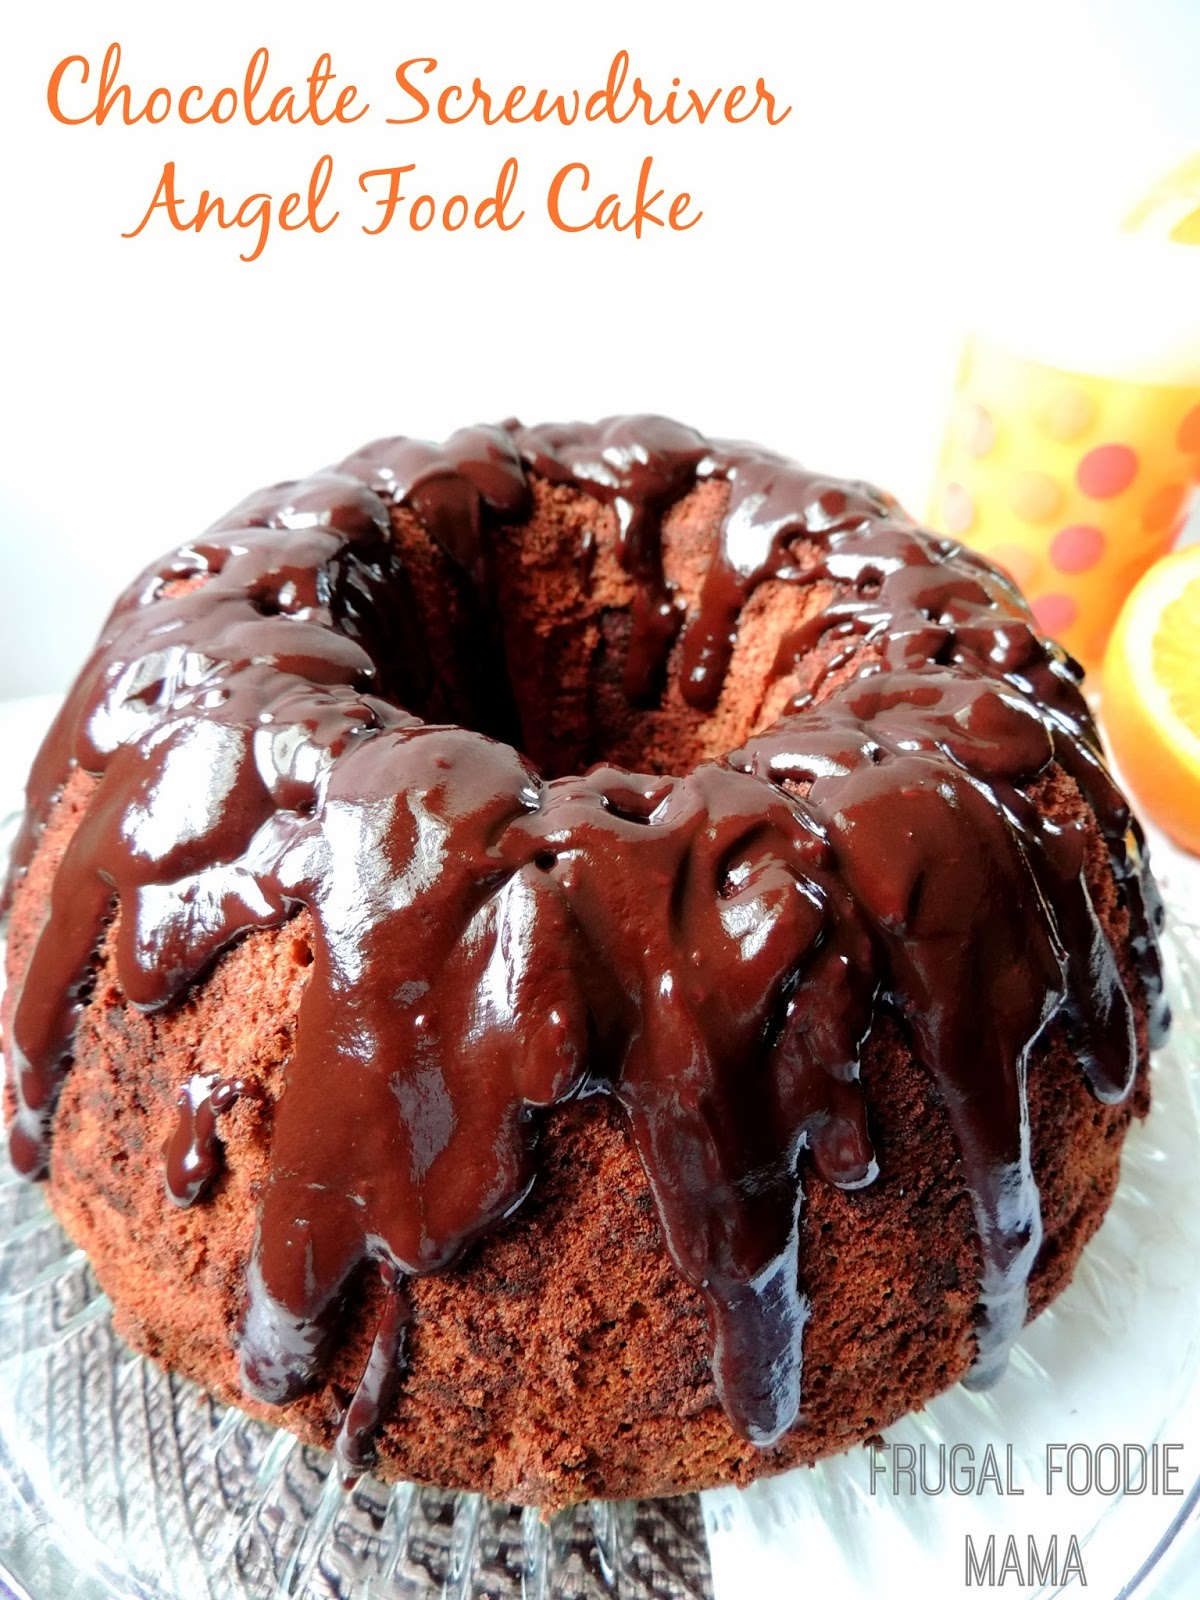 This Chocolate Screwdriver Angel Food Cake is a light, airy chocolaty orange angel food cake with a rich, gooey chocolate ganache glaze oozing down each slice of it.